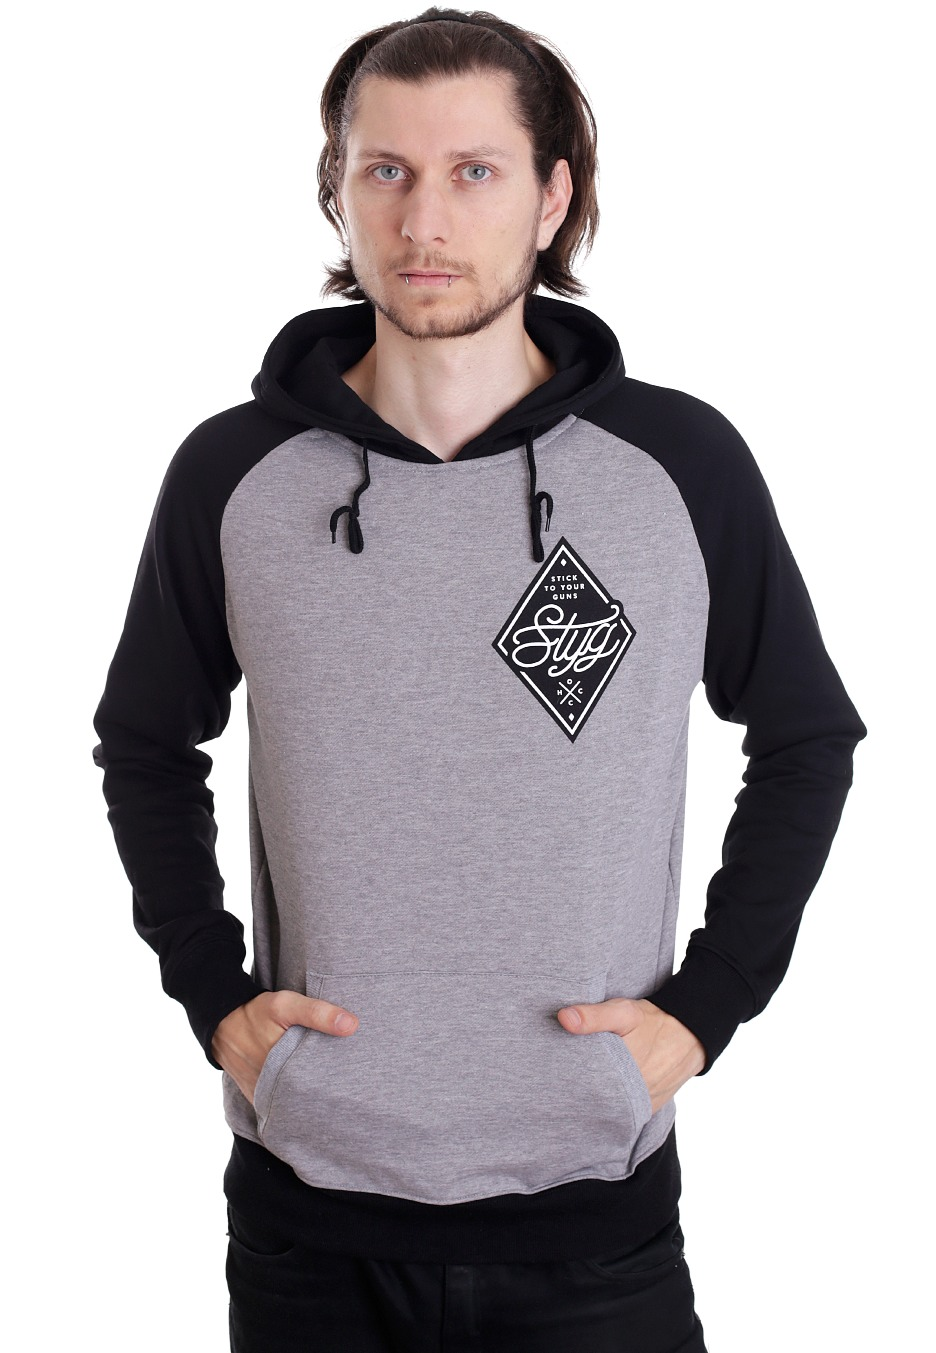 Stick to your guns hoodie